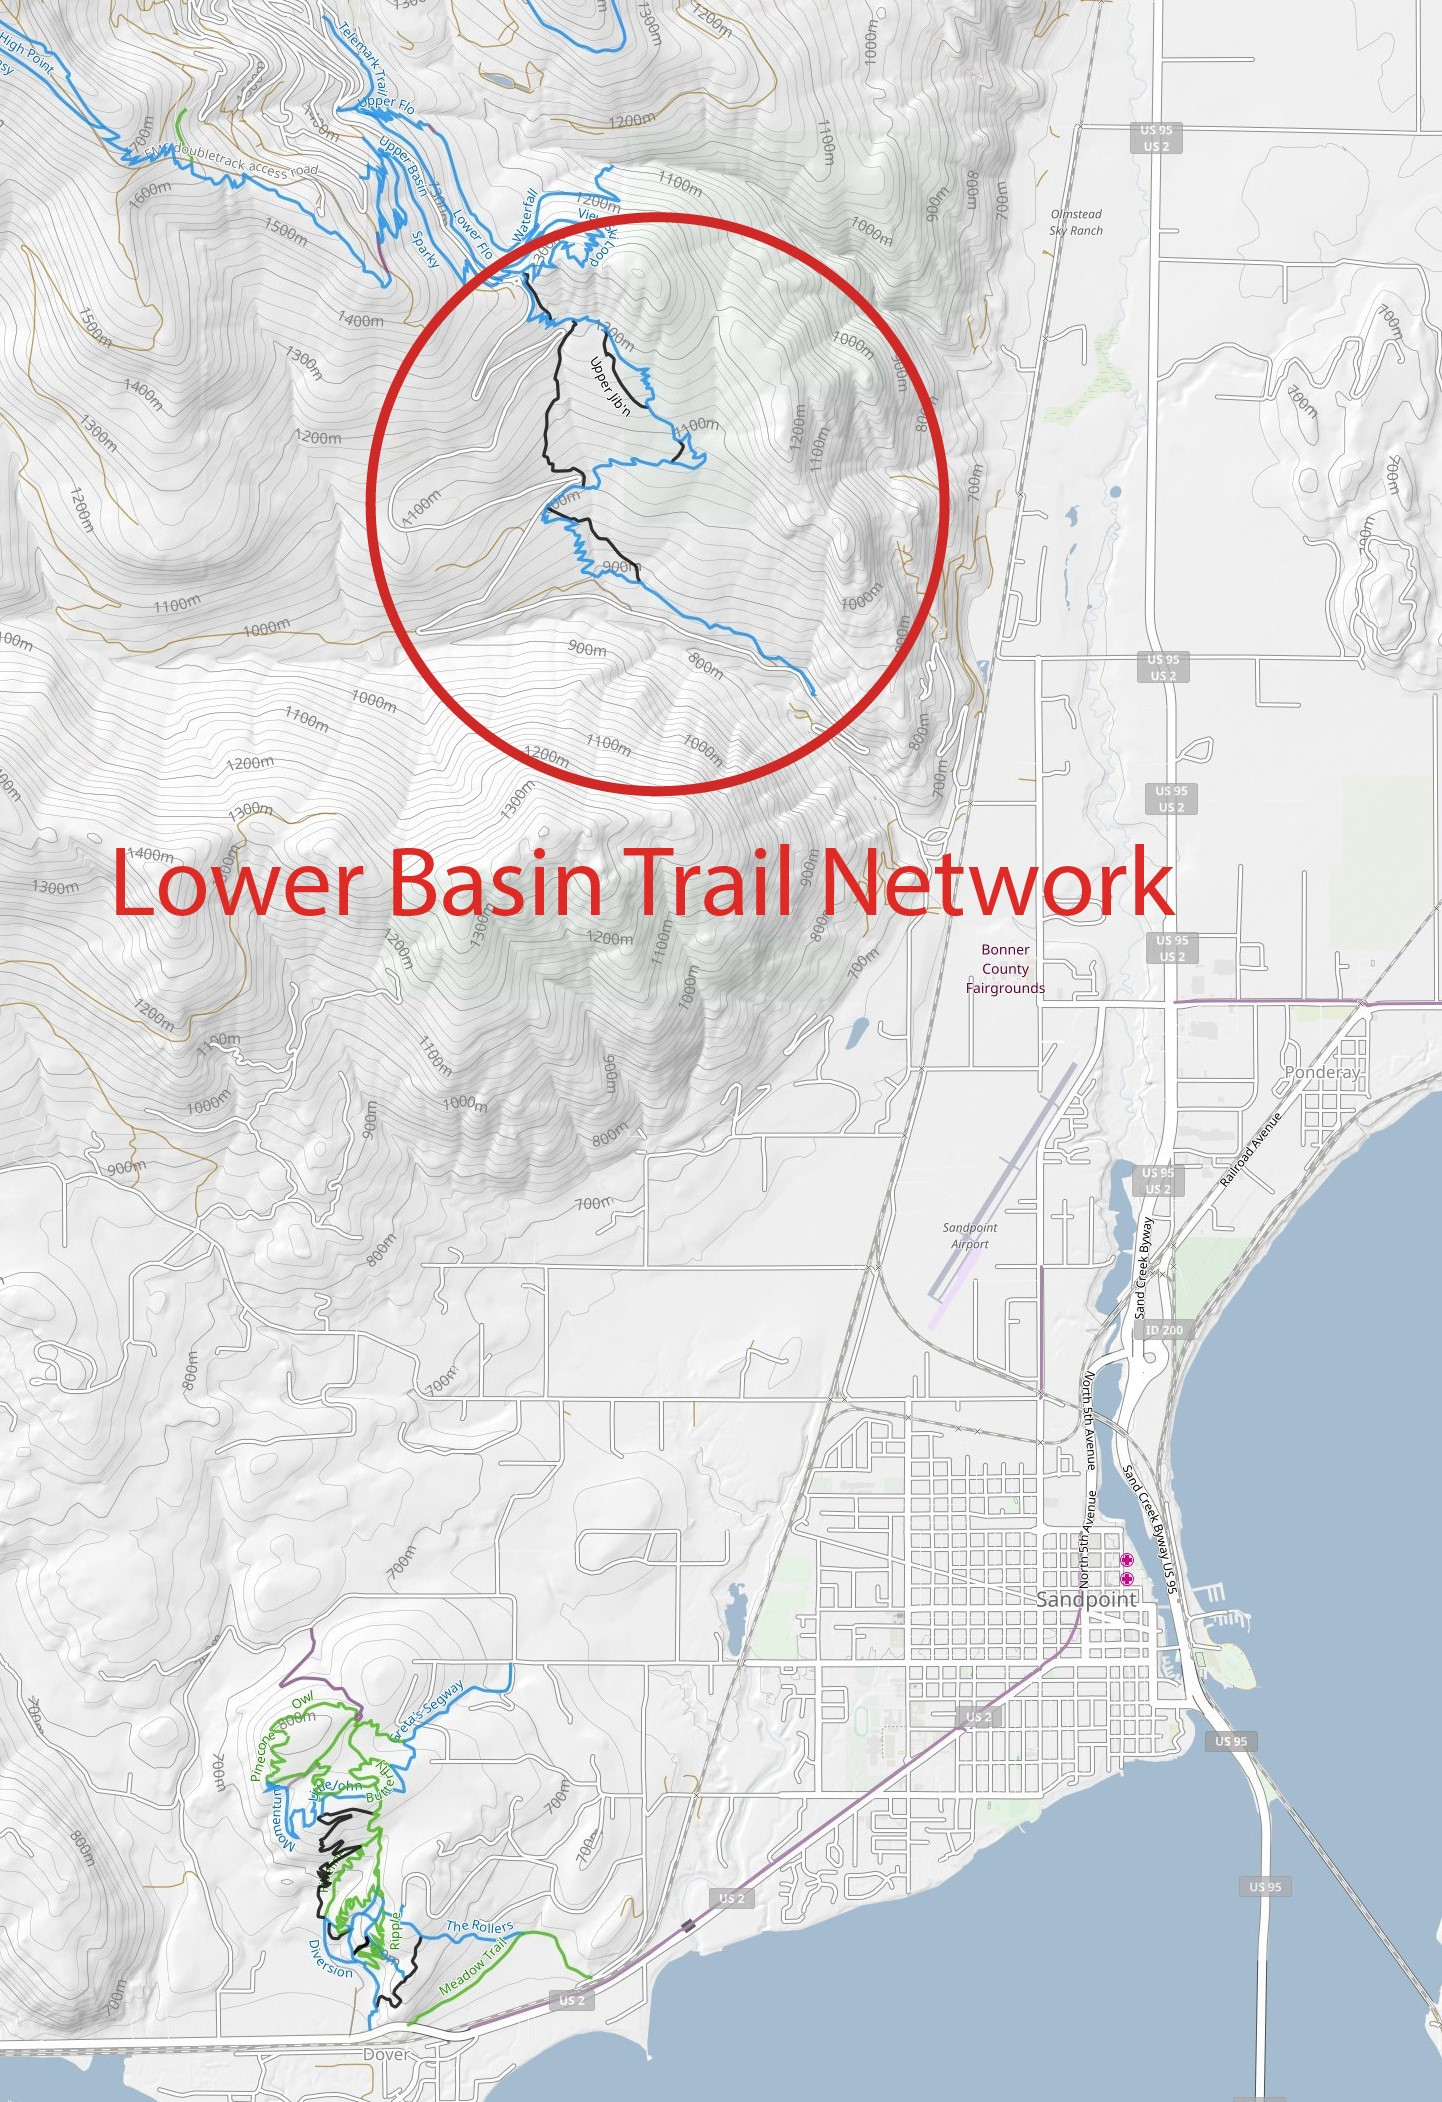 Lower Basin Trail Network lies 3 miles north of downtown Sandpoint